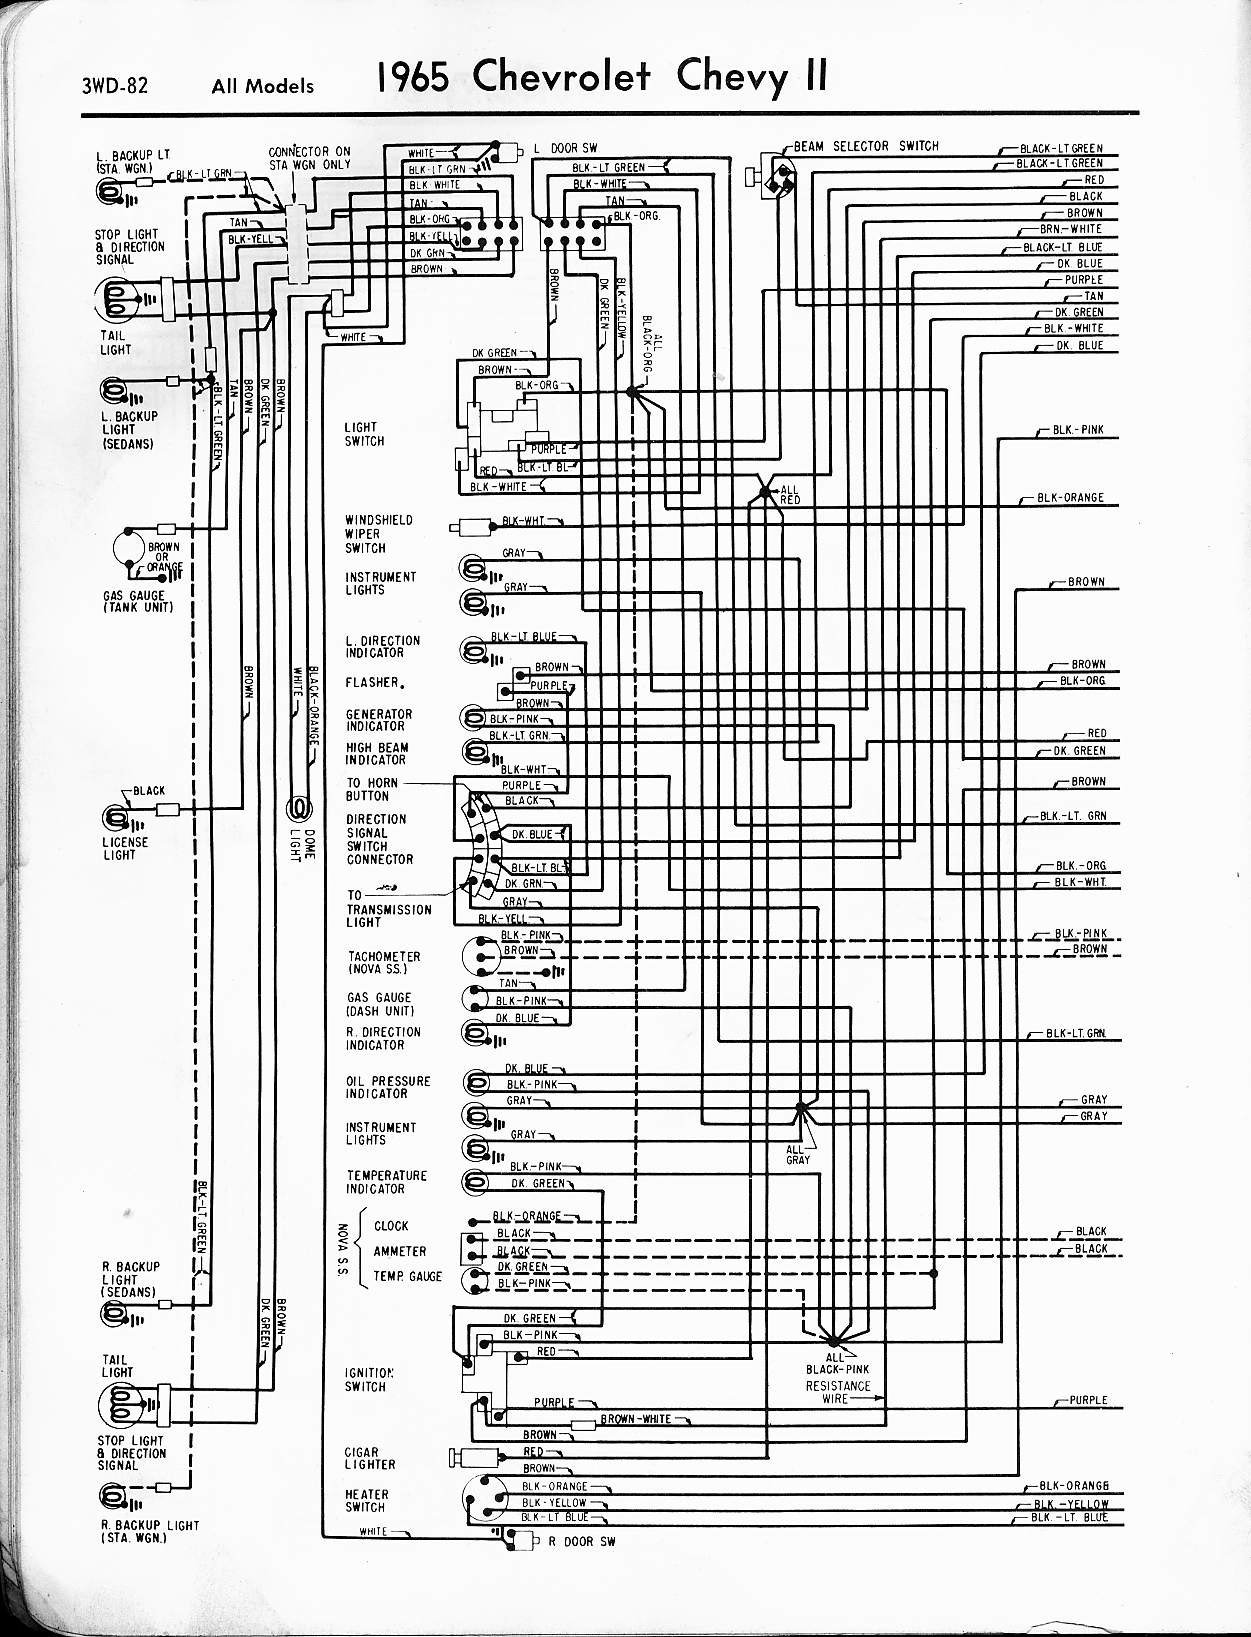 MWireChev65_3WD 082 chevy wiring diagrams chevy radio wiring \u2022 wiring diagrams j 1965 corvair wiring diagram at nearapp.co